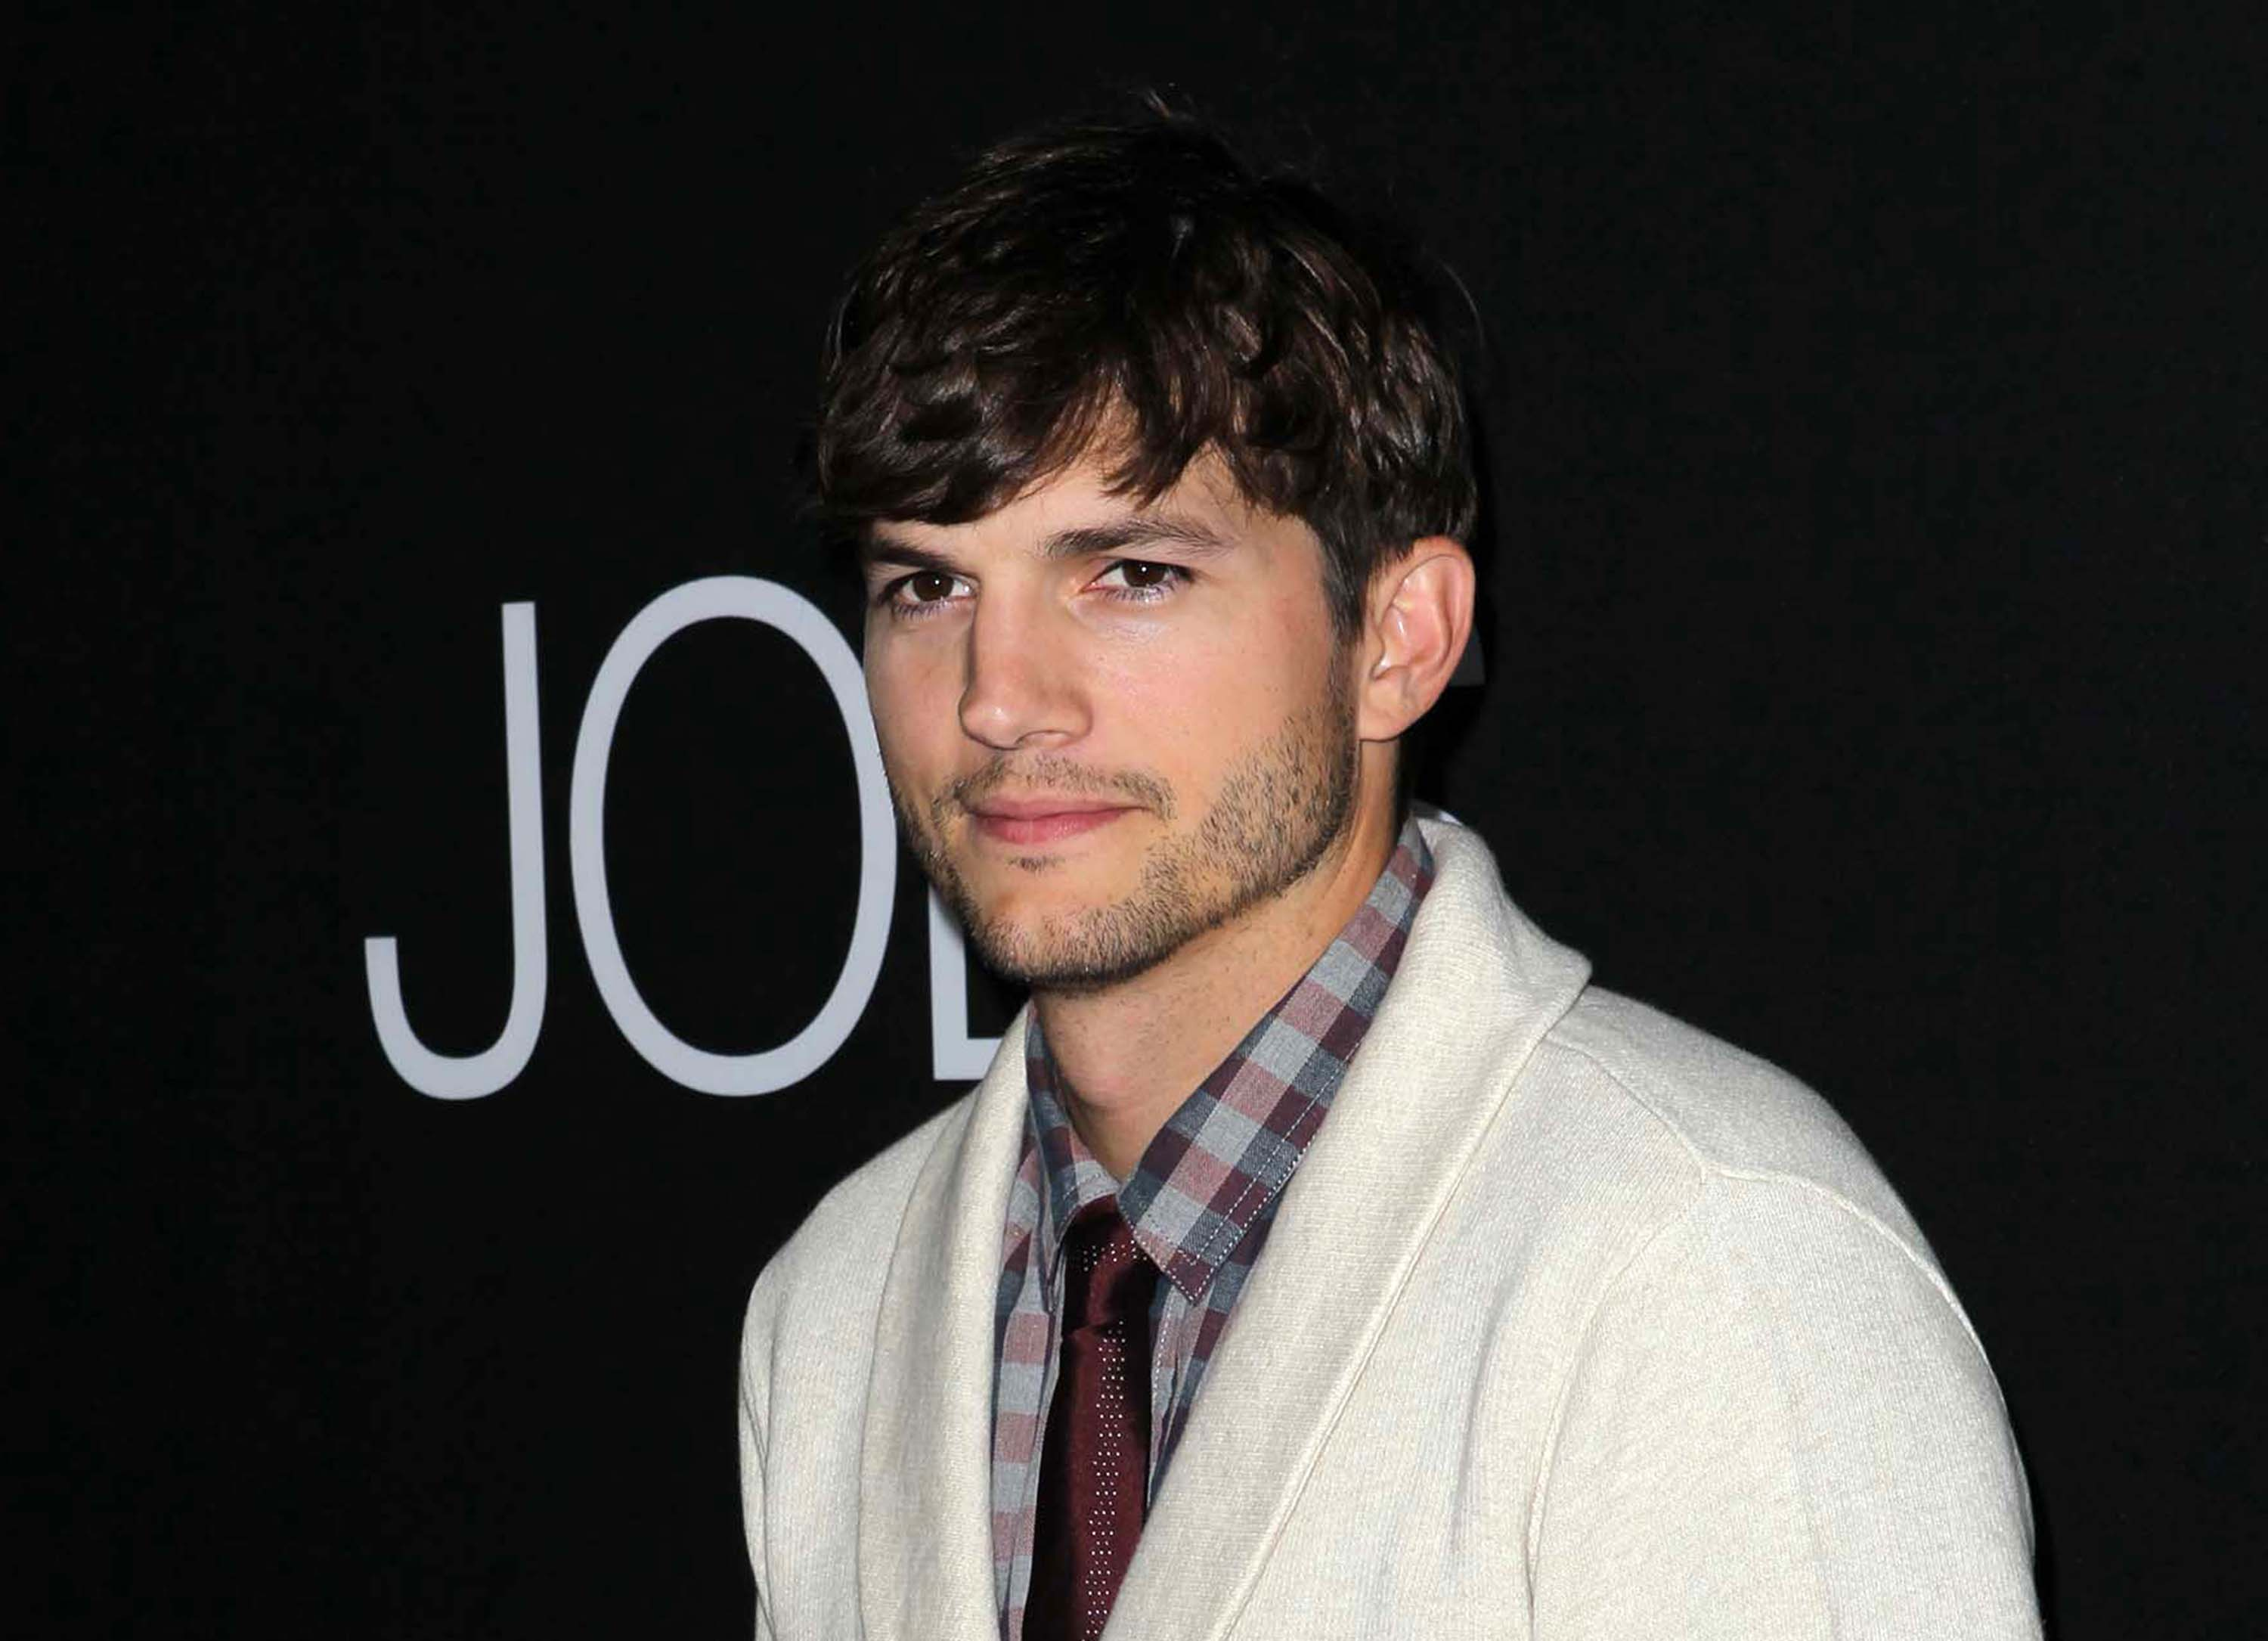 18 Fun Facts About Ashton Kutcher Not Even Mila Kunis Knows About